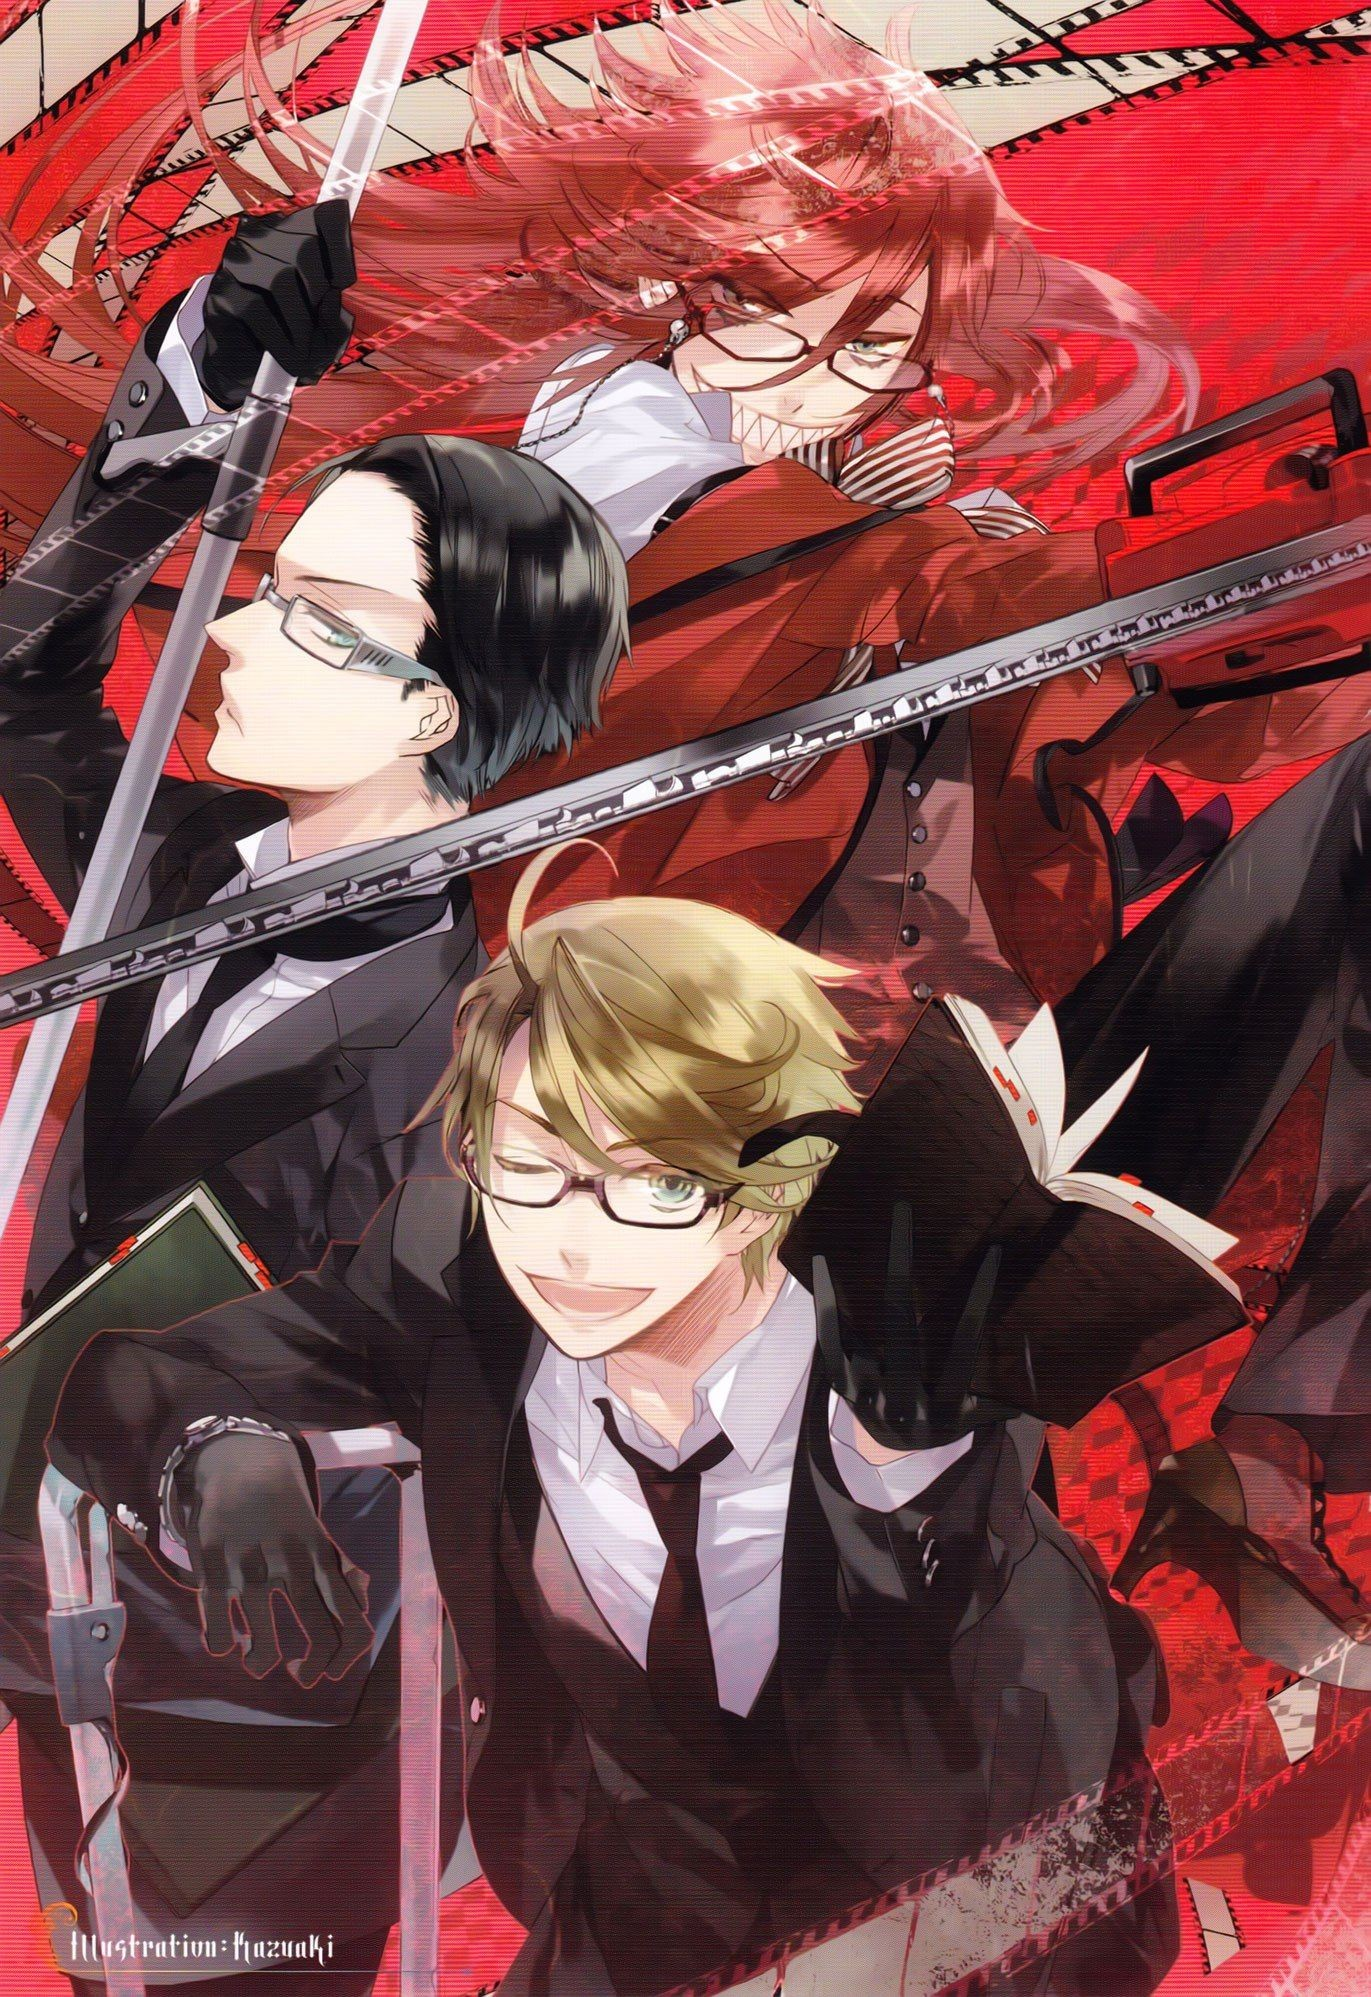 51 Grell Sutcliff Wallpapers On Wallpaperplay Black Butler